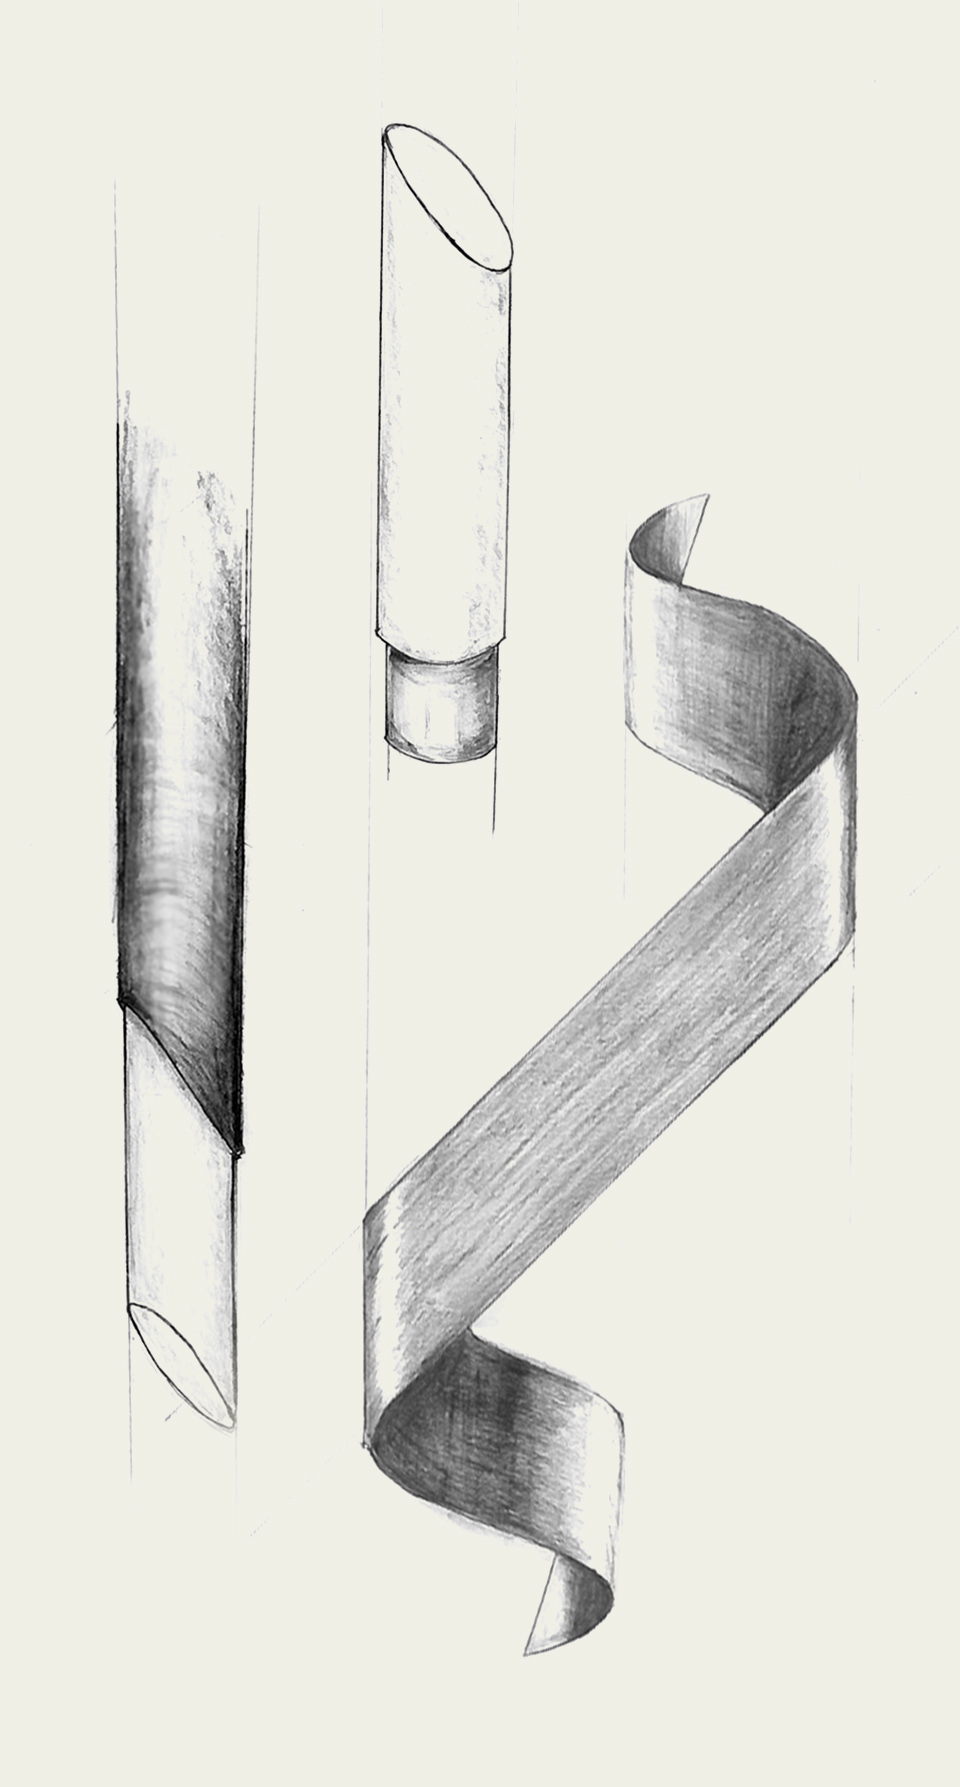 Sleek Modern Wall Light Precision Cut Bevelled Edges Brushed Brass Concept Sketch Nulty Bespoke